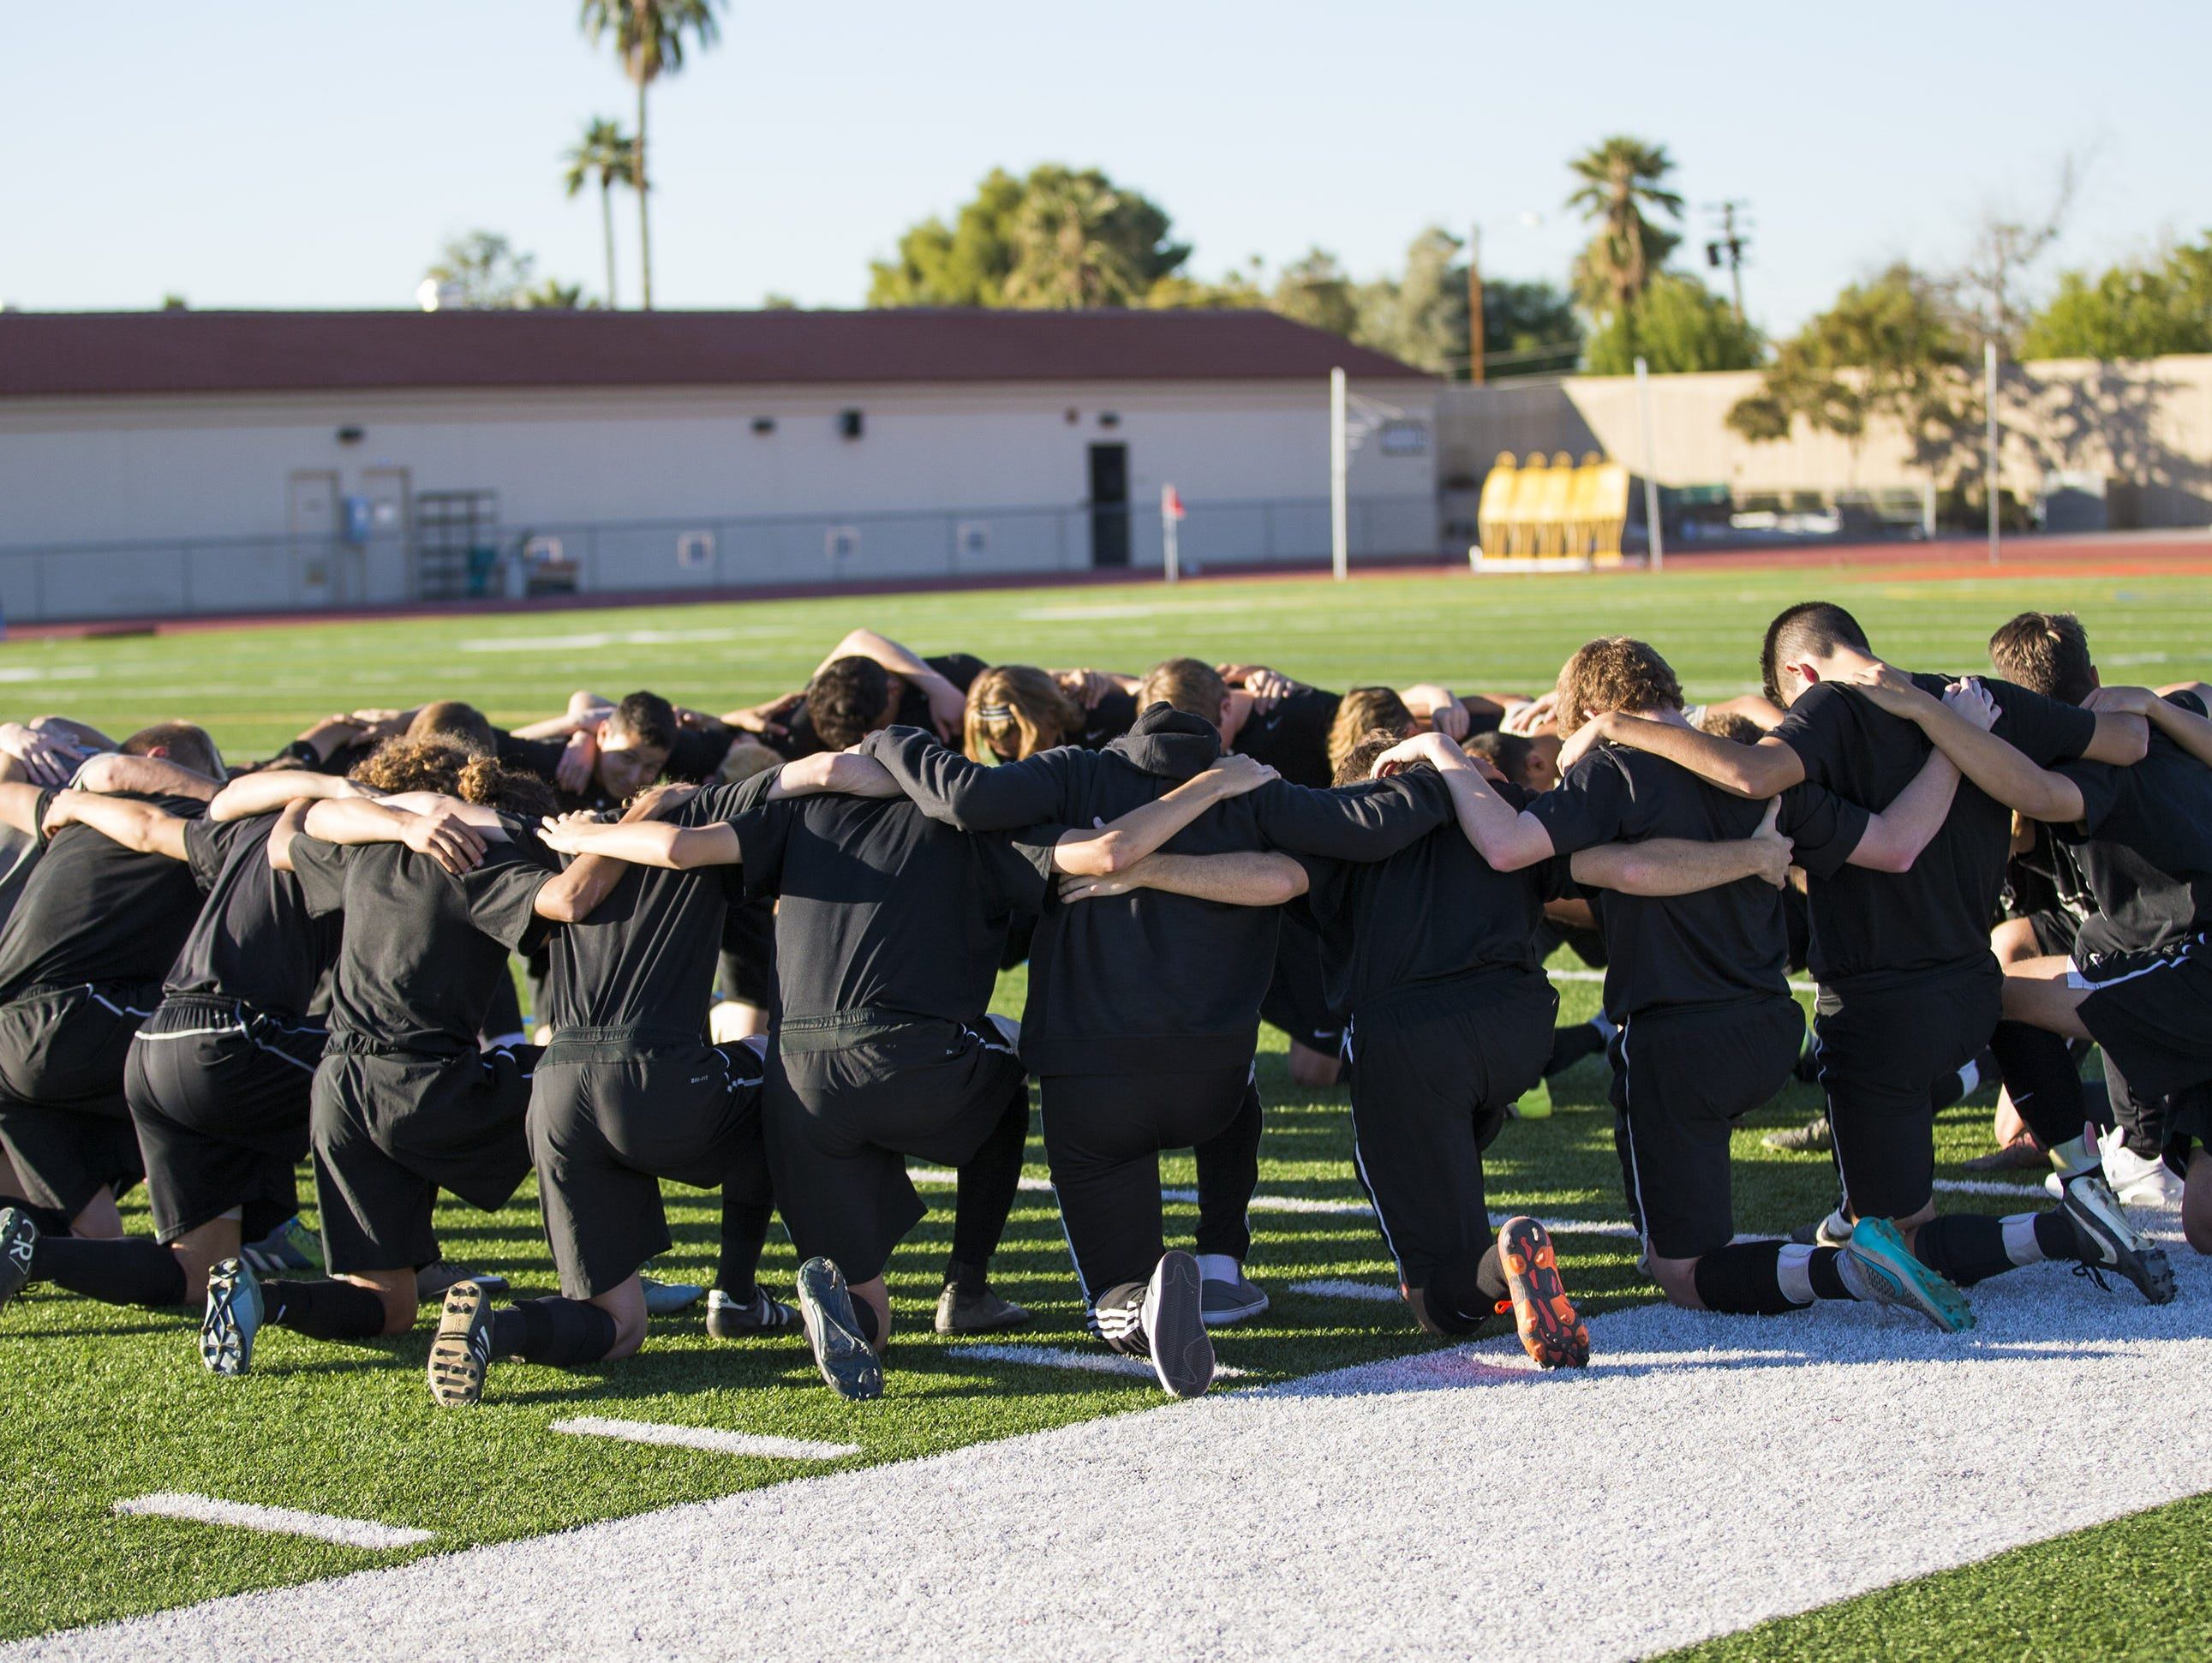 Hamilton High players huddle before playing a friendly against Brophy in Phoenix November 23, 2015.